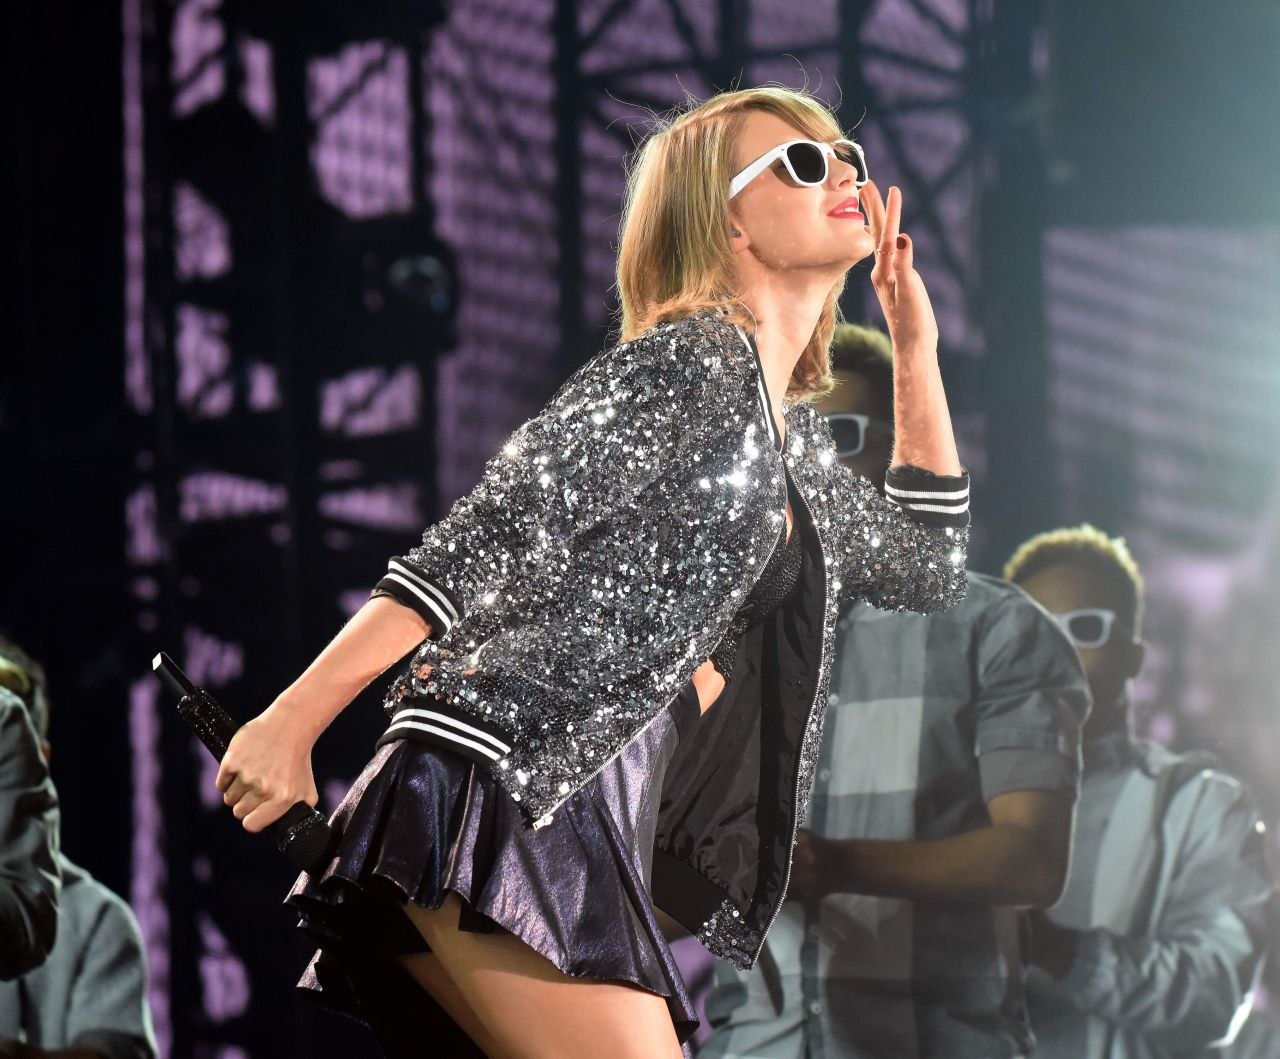 taylor-swift-the-1989-world-tour-at-the-raymond-james-stadium-in-tampa_3.jpg&f=1&nofb=1